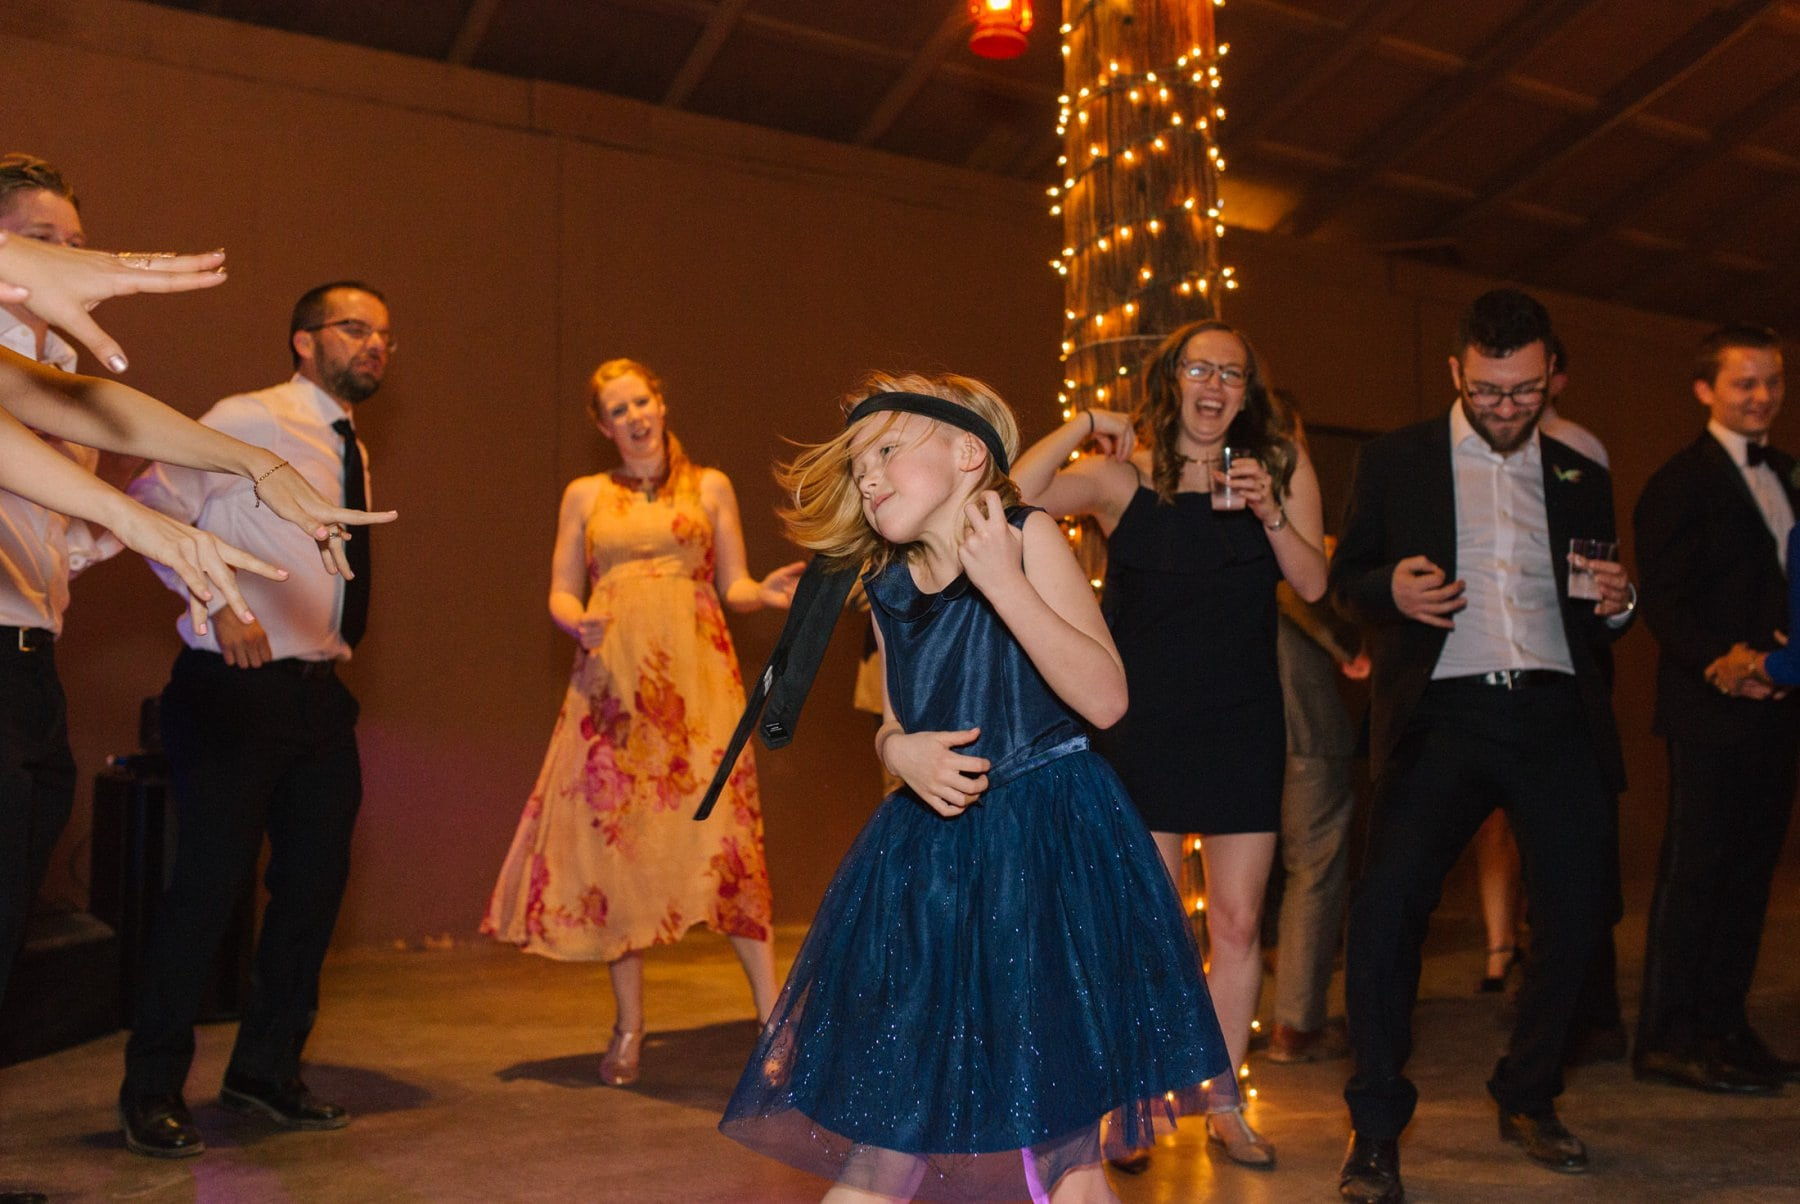 Arizona documentary wedding photographer Alyssa Campbell Desert Foothills wedding reception little girl rocking out